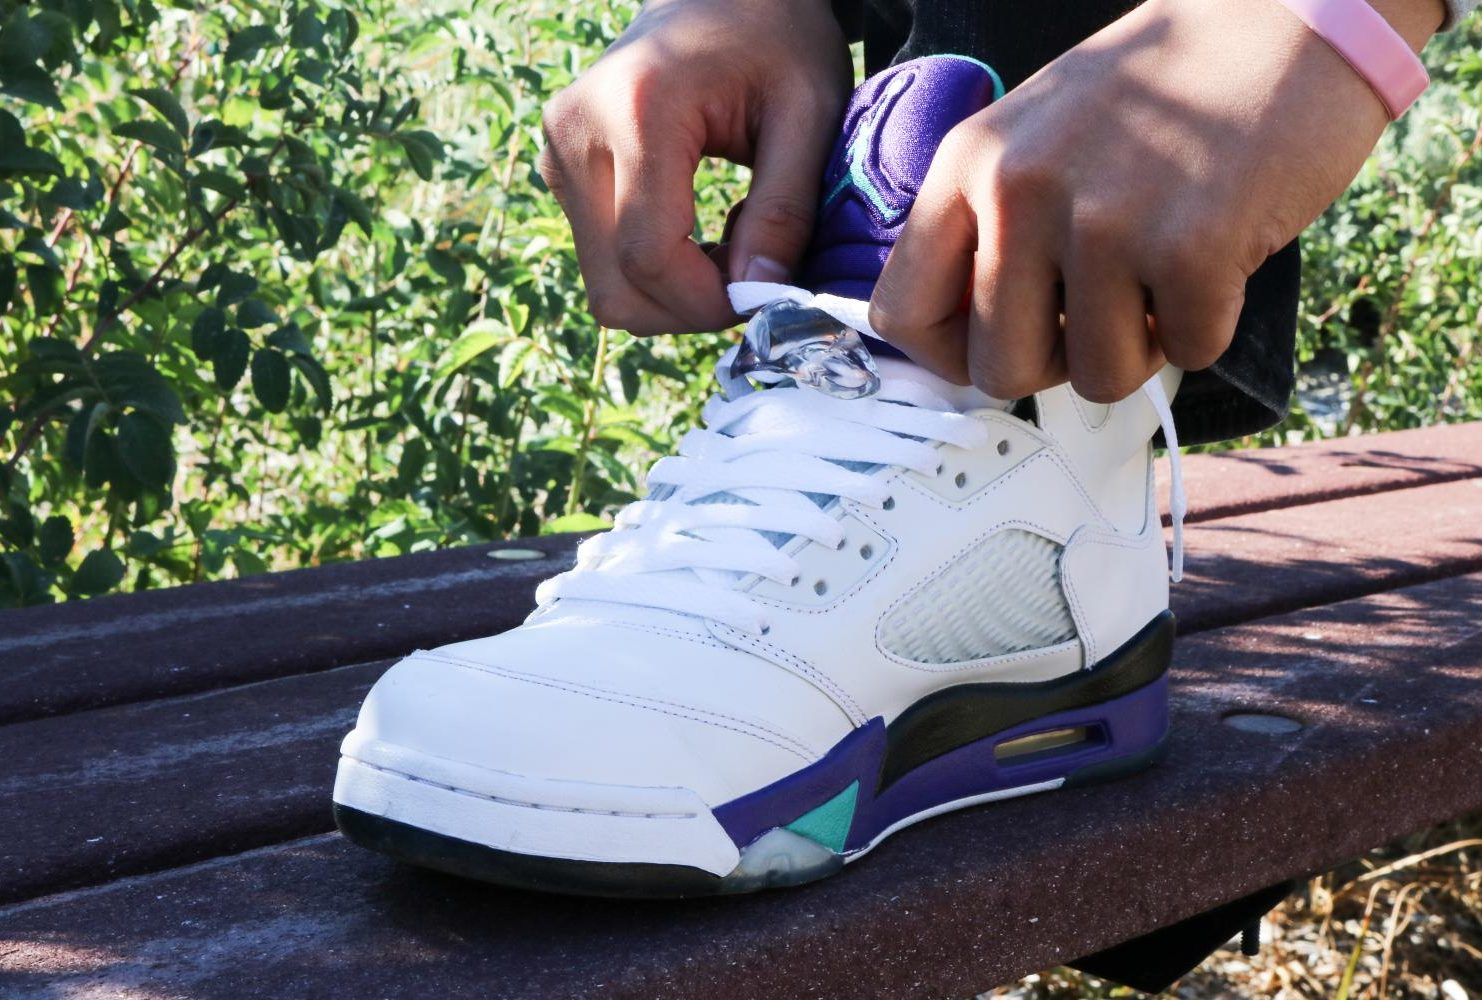 """I camped out at six in the morning at the mall to get Fire Red 5s."" – Joey Ngyun 